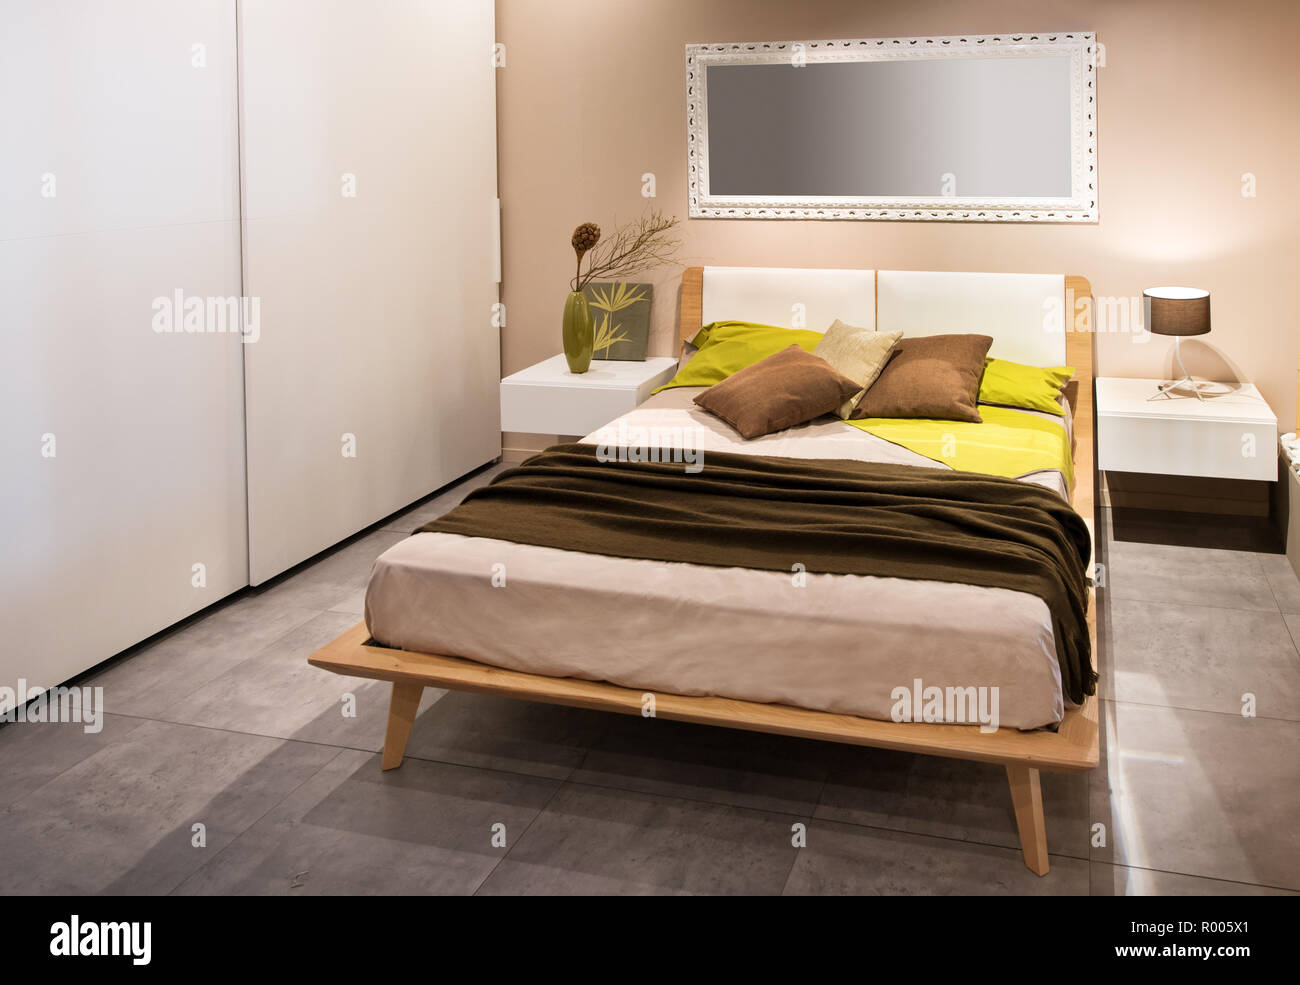 Modern bedroom with wooden scandinavian style bed and side